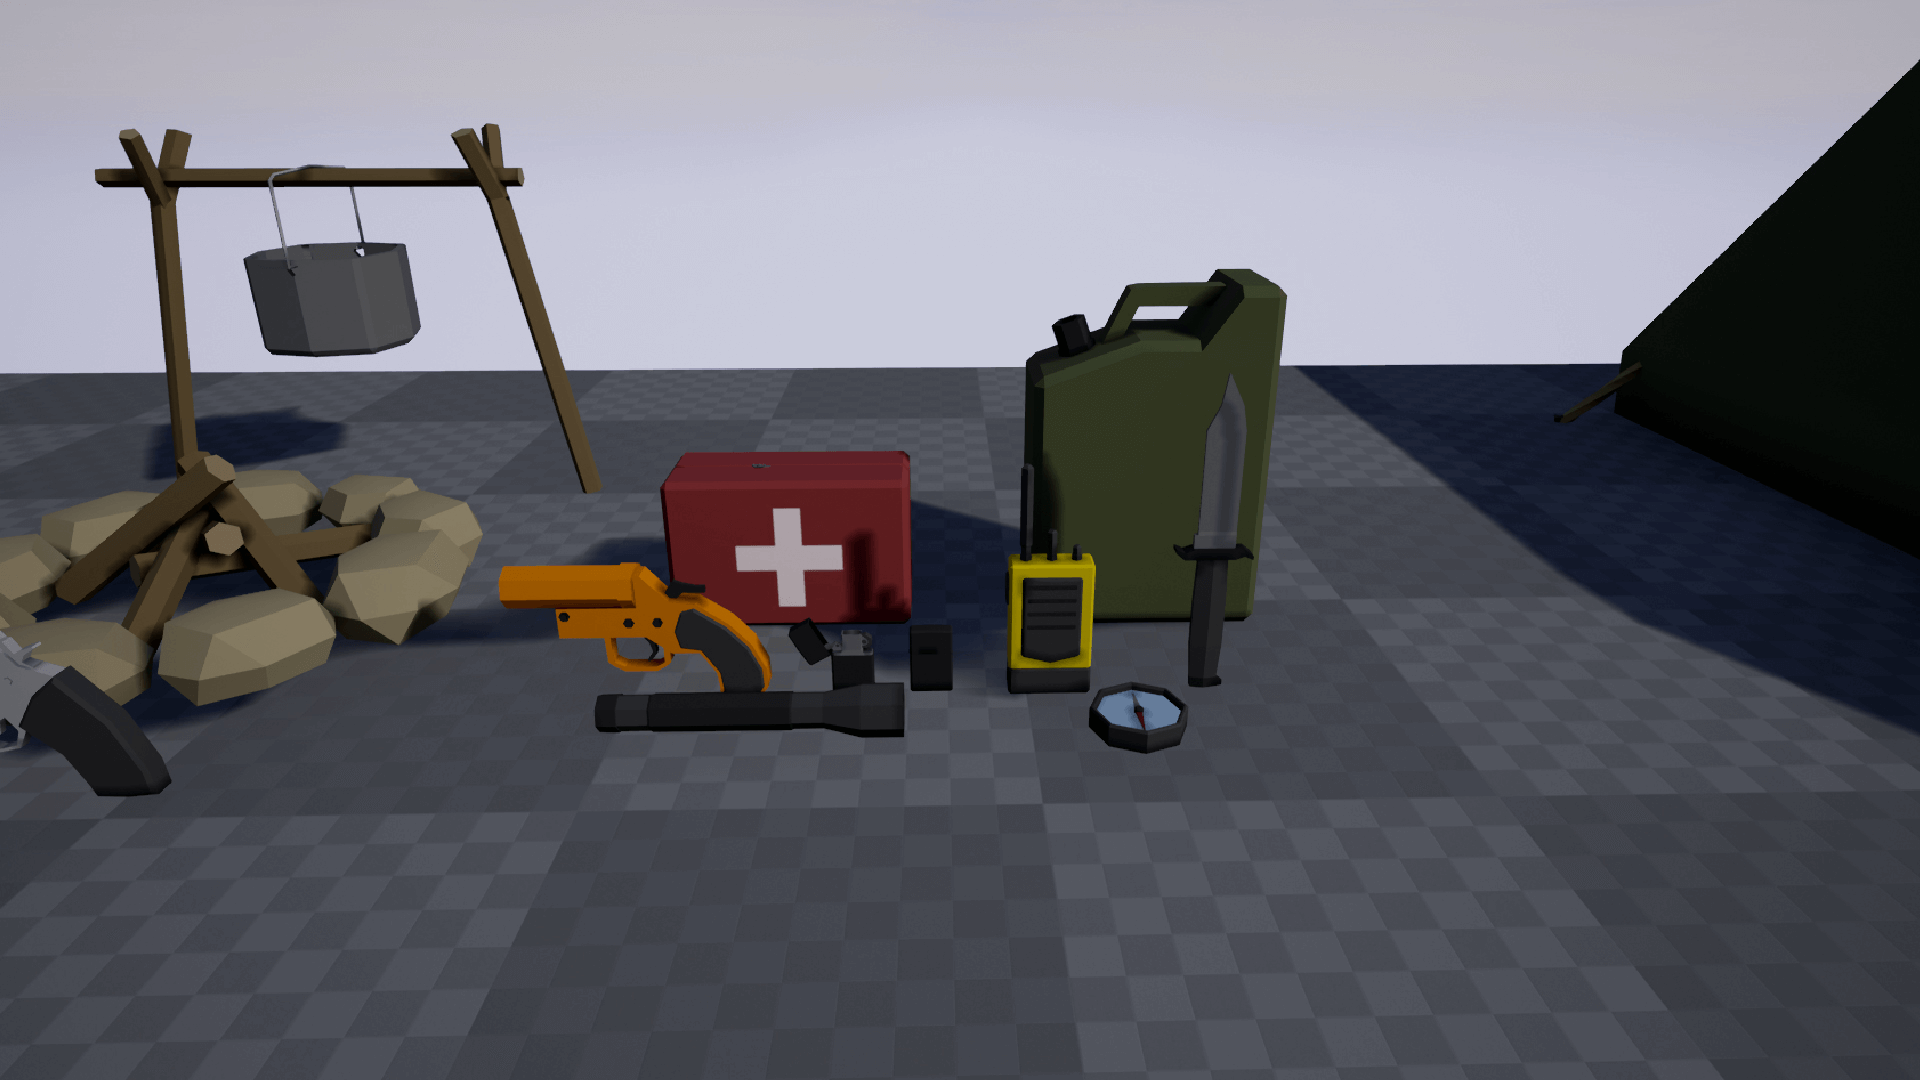 Low Poly Survival Pack by Ziv Iz in Props - UE4 Marketplace